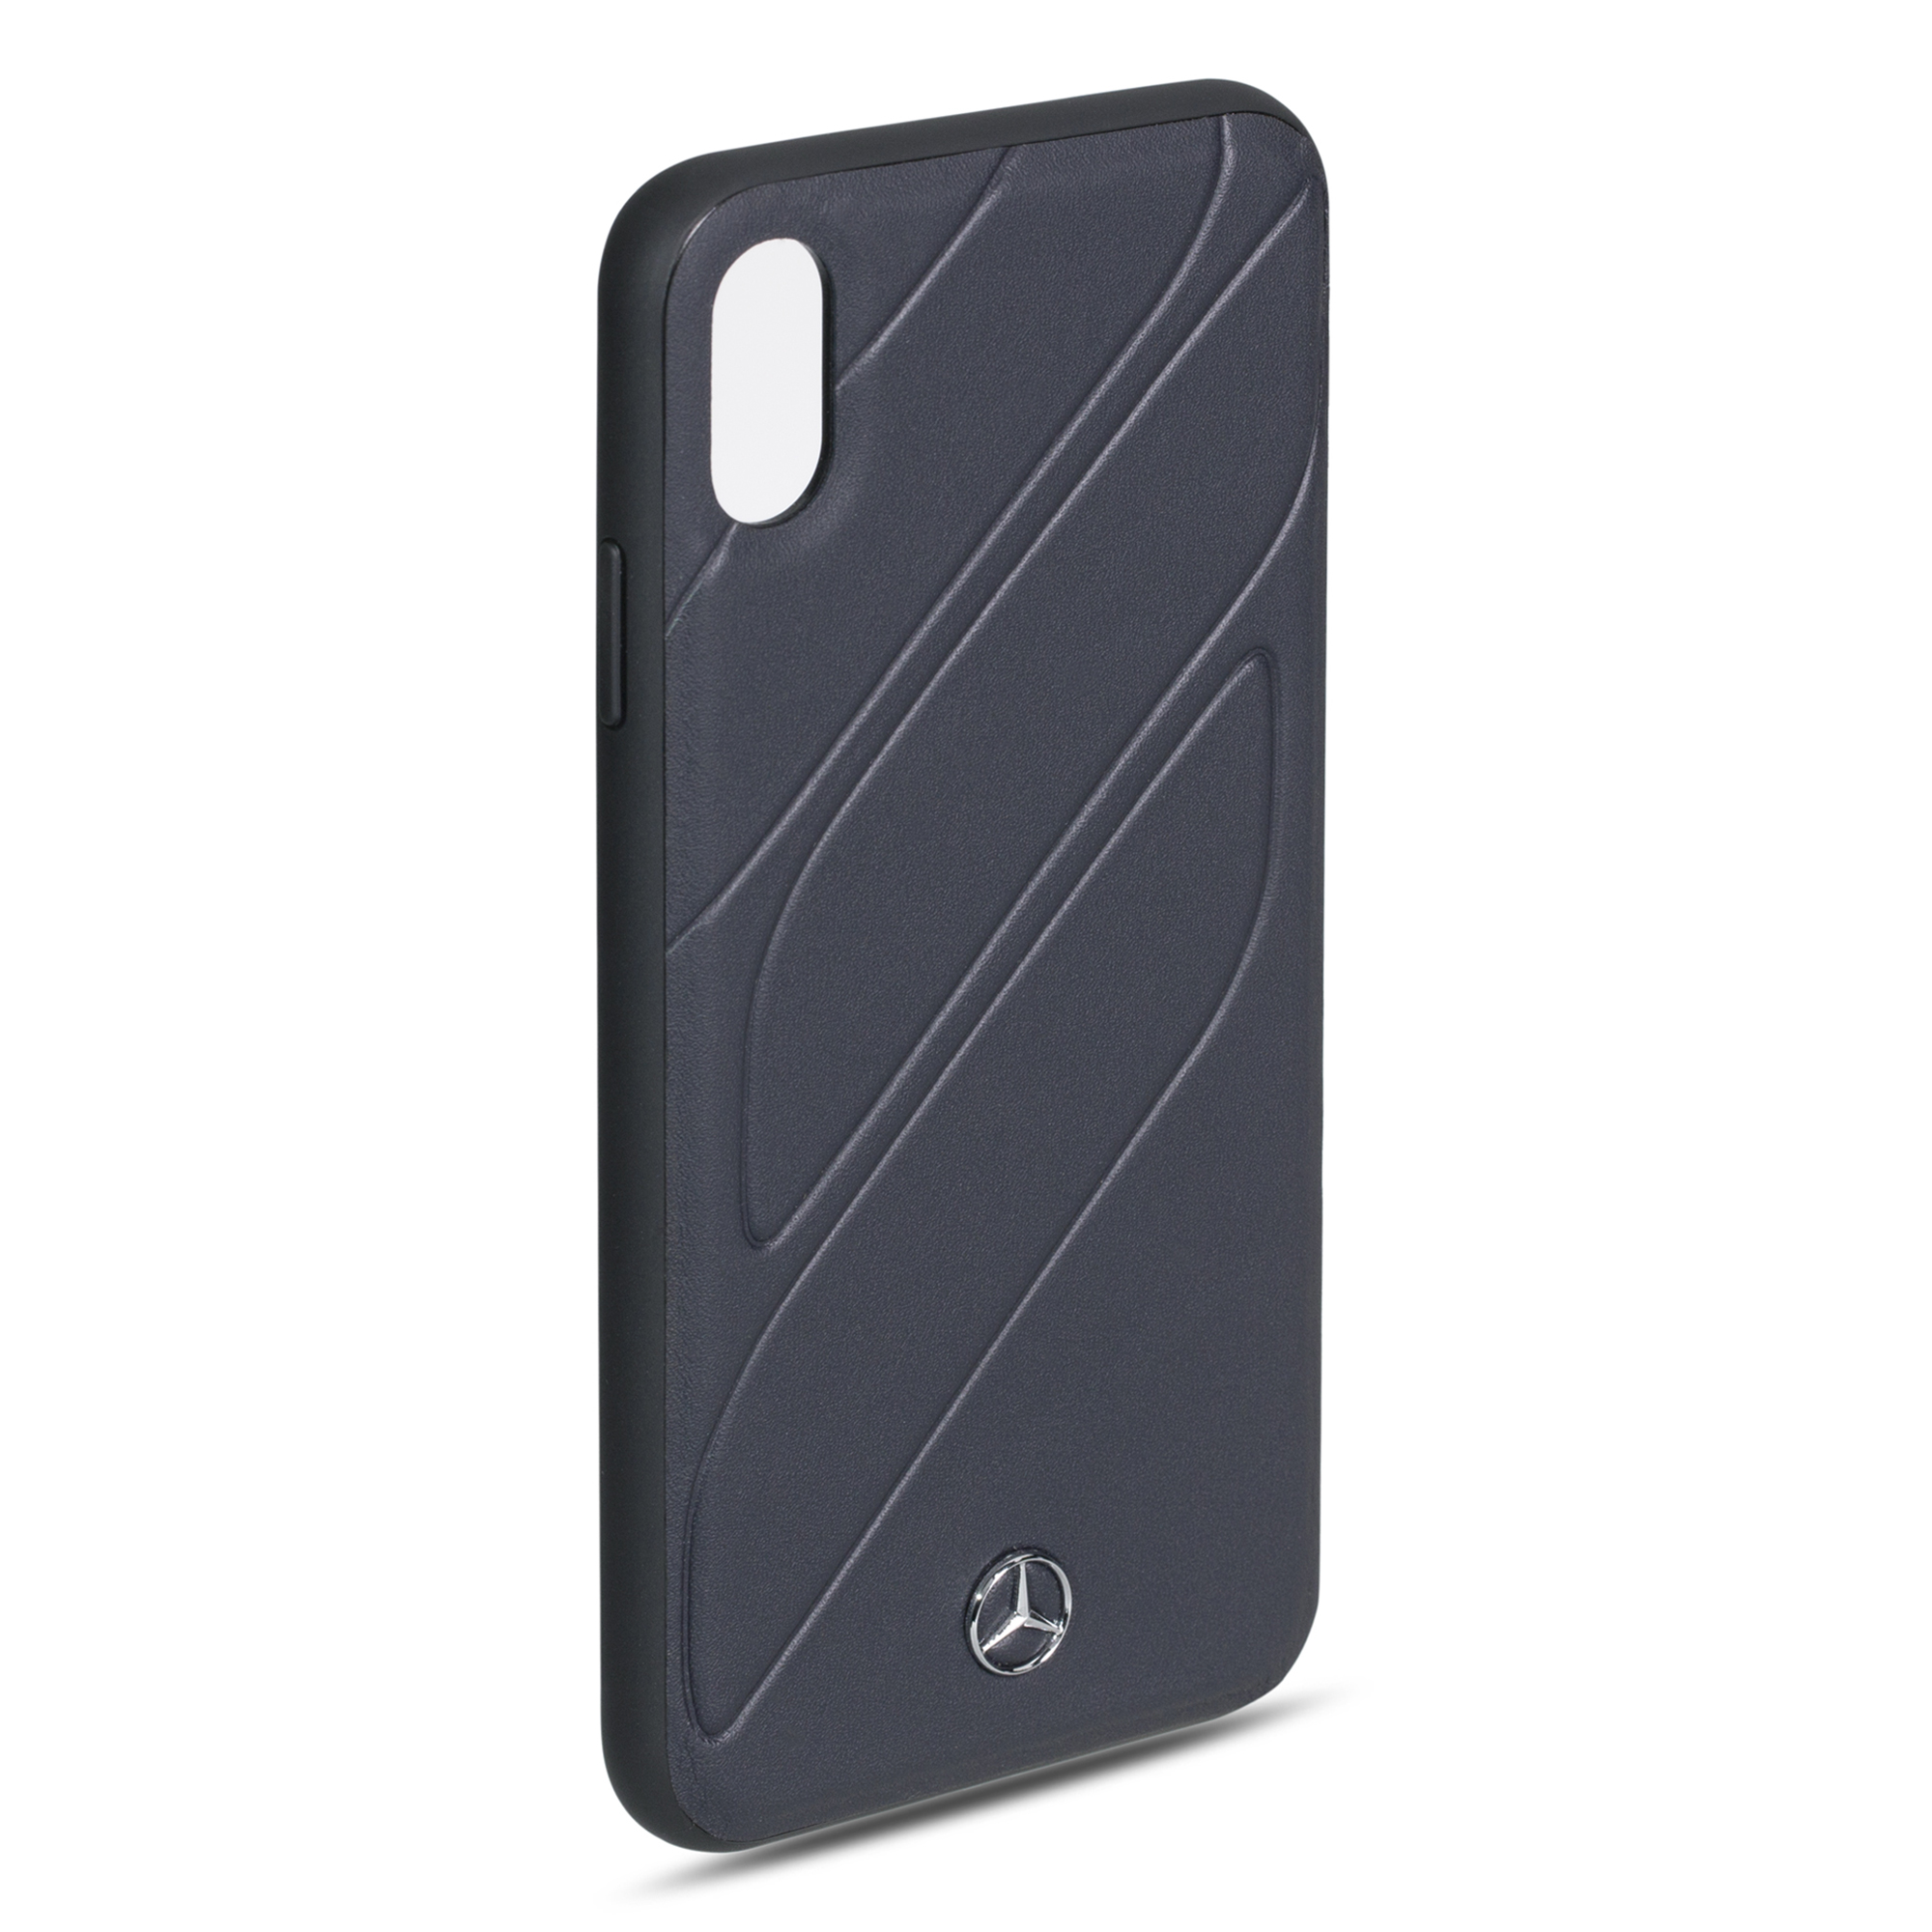 Genuine Leather Hard Case for iPhone XS Max (New Organic I)